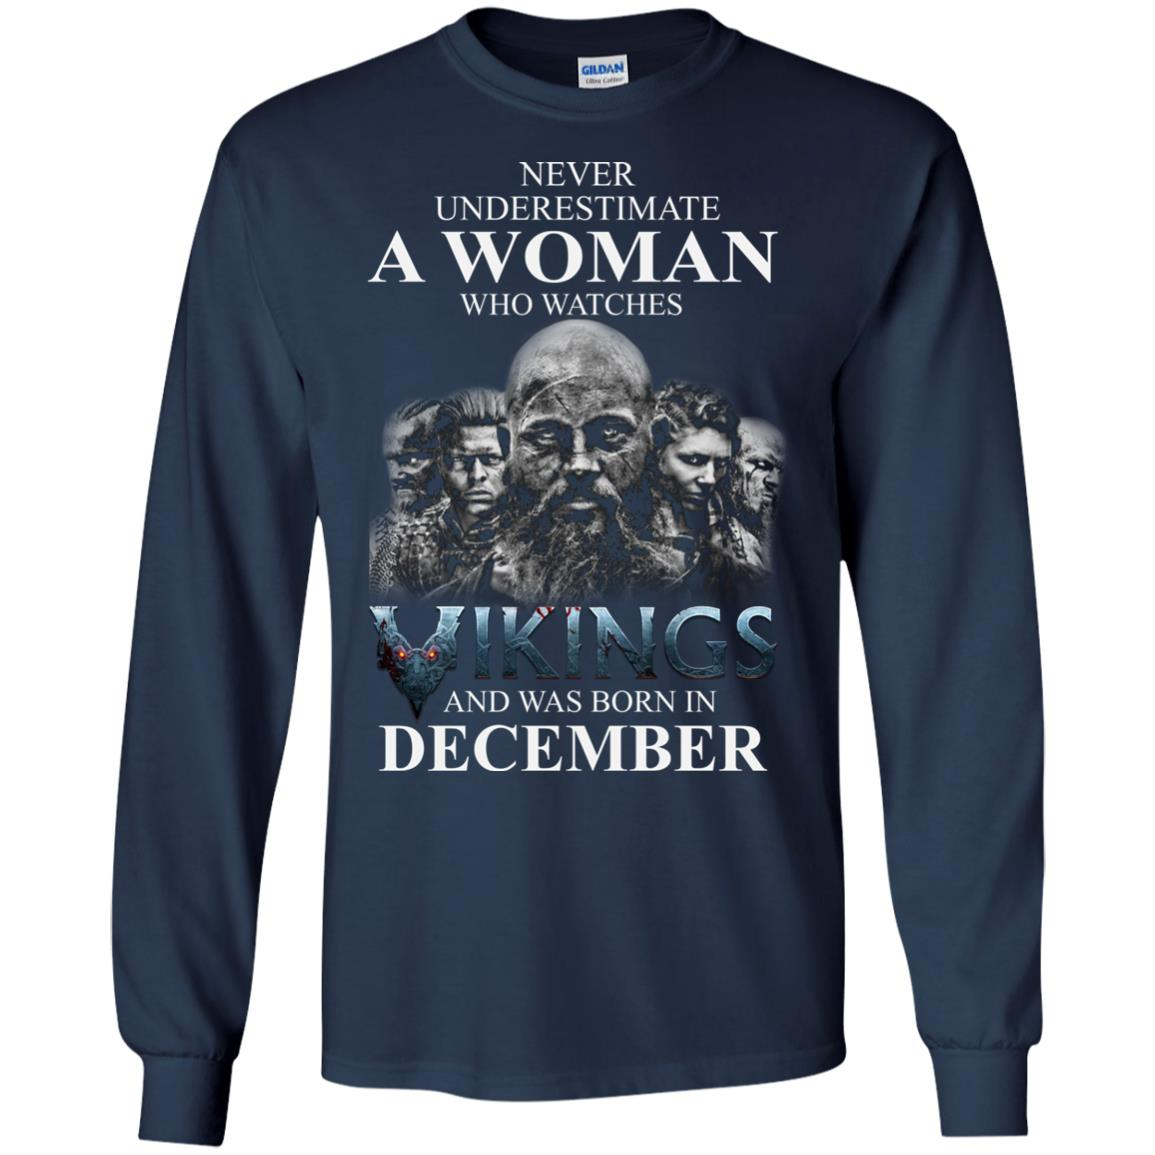 image 1222 - Never Underestimate A woman who watches Vikings and was born in December shirt